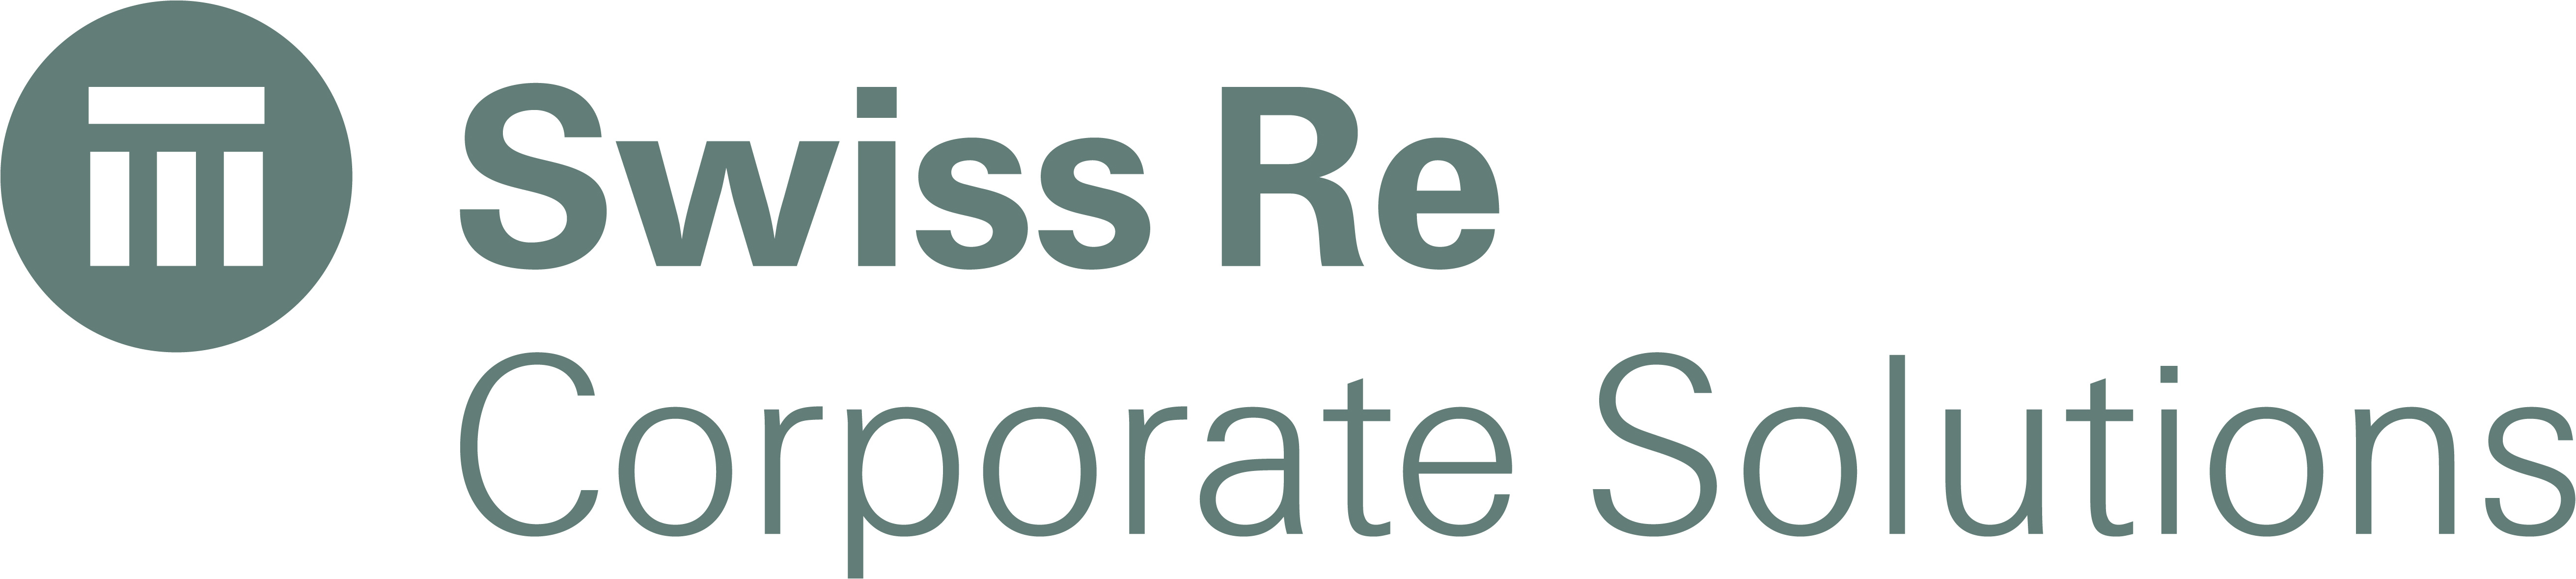 Swiss Re Corporate Solutions